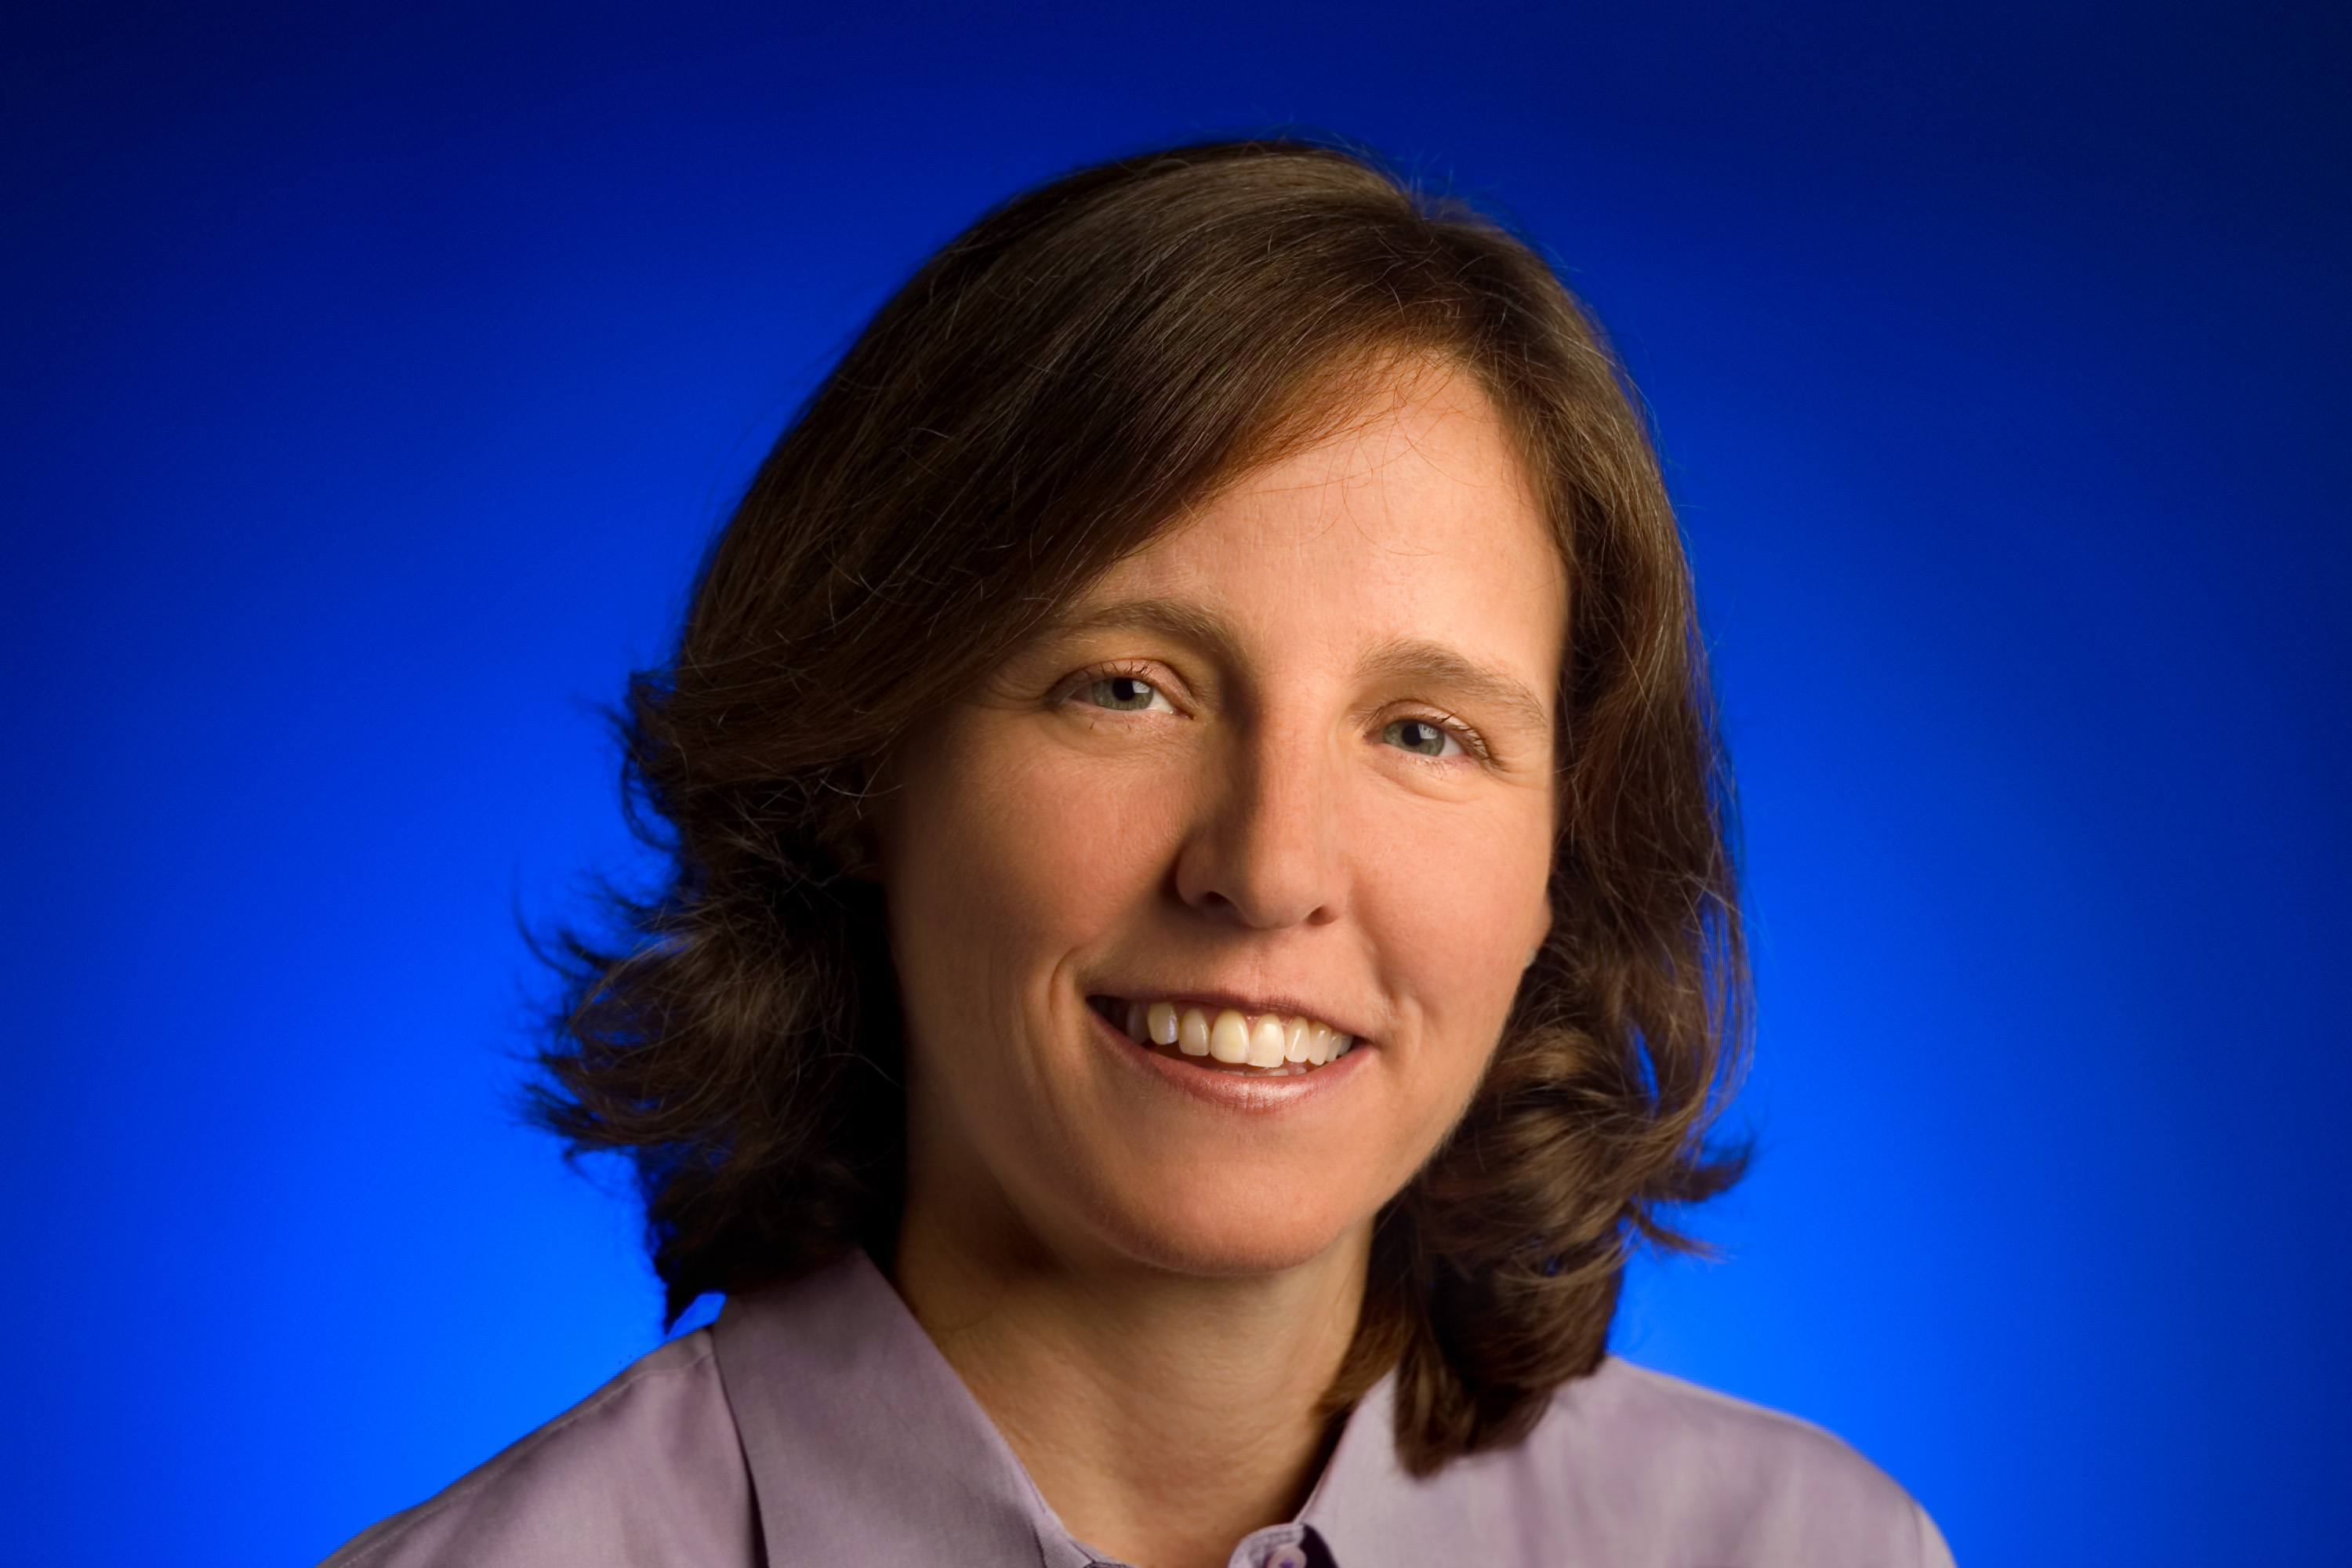 Lesbian Badass Megan Smith Named Obama's Chief Technology Officer ...: www.autostraddle.com/megan-smith-named-chief-technology-officer-of...